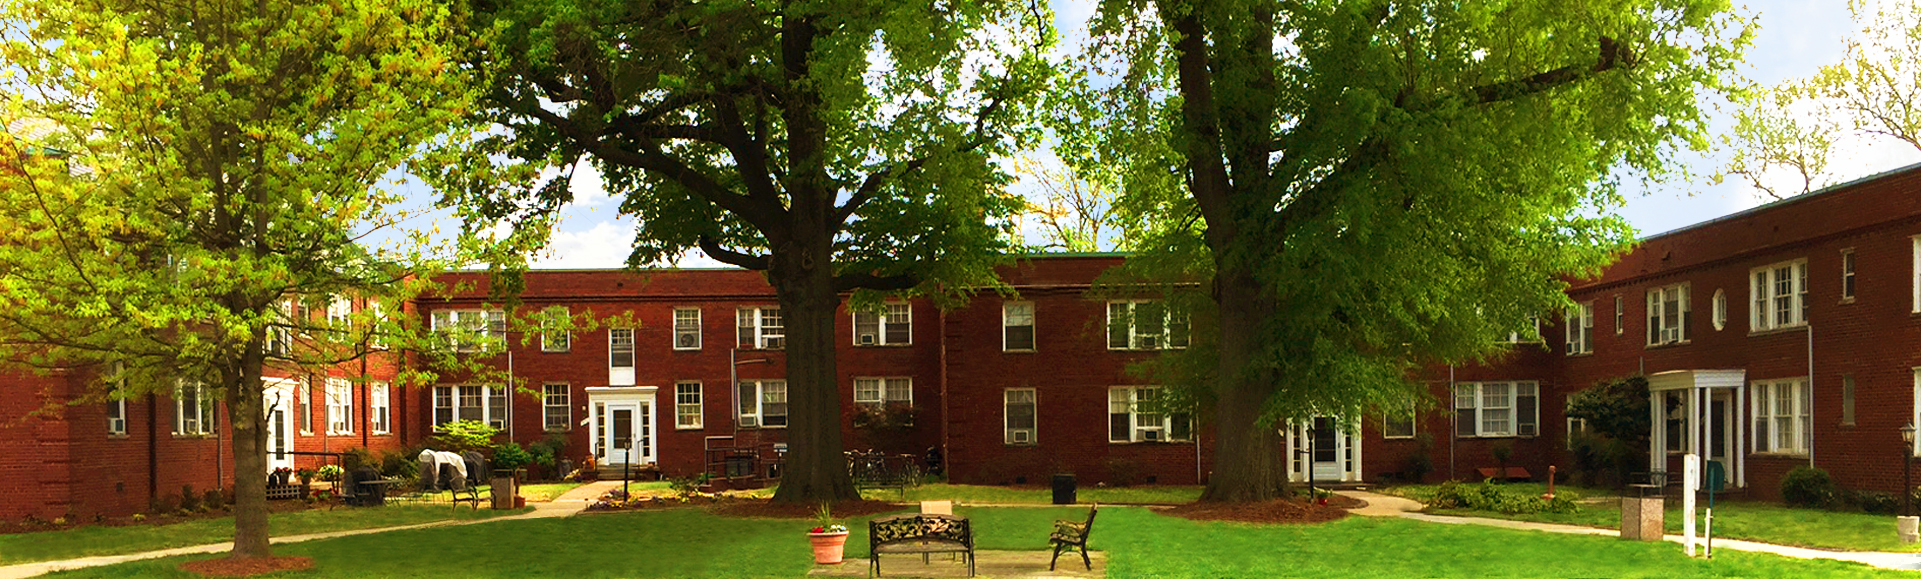 Gunston Hall Courtyard